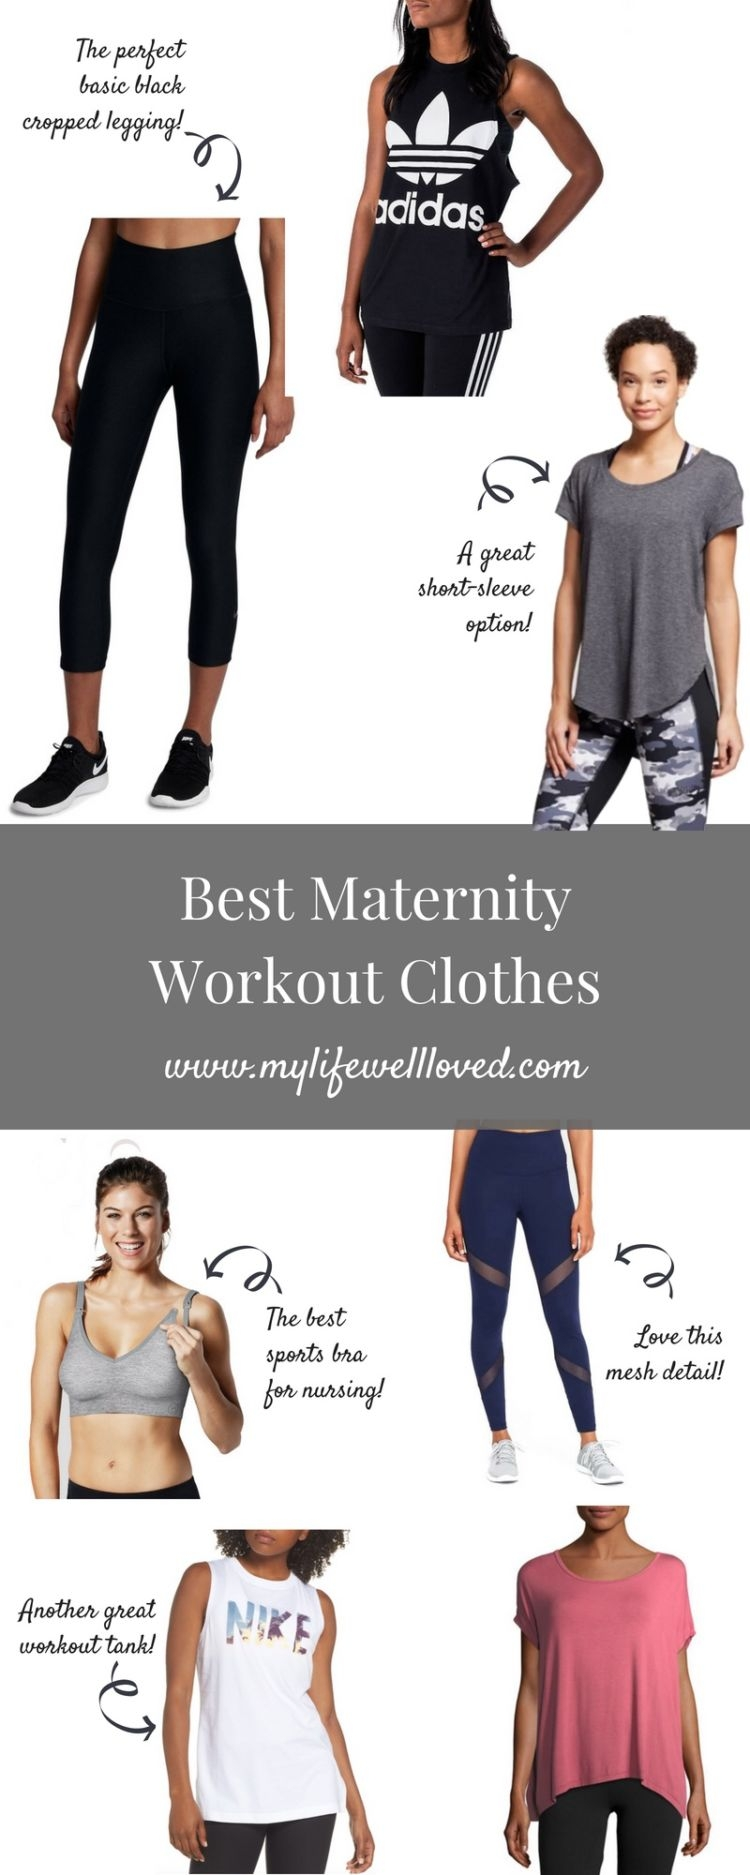 bac4ea640c31b4 The Best Maternity Workout Clothes - My Life Well Loved